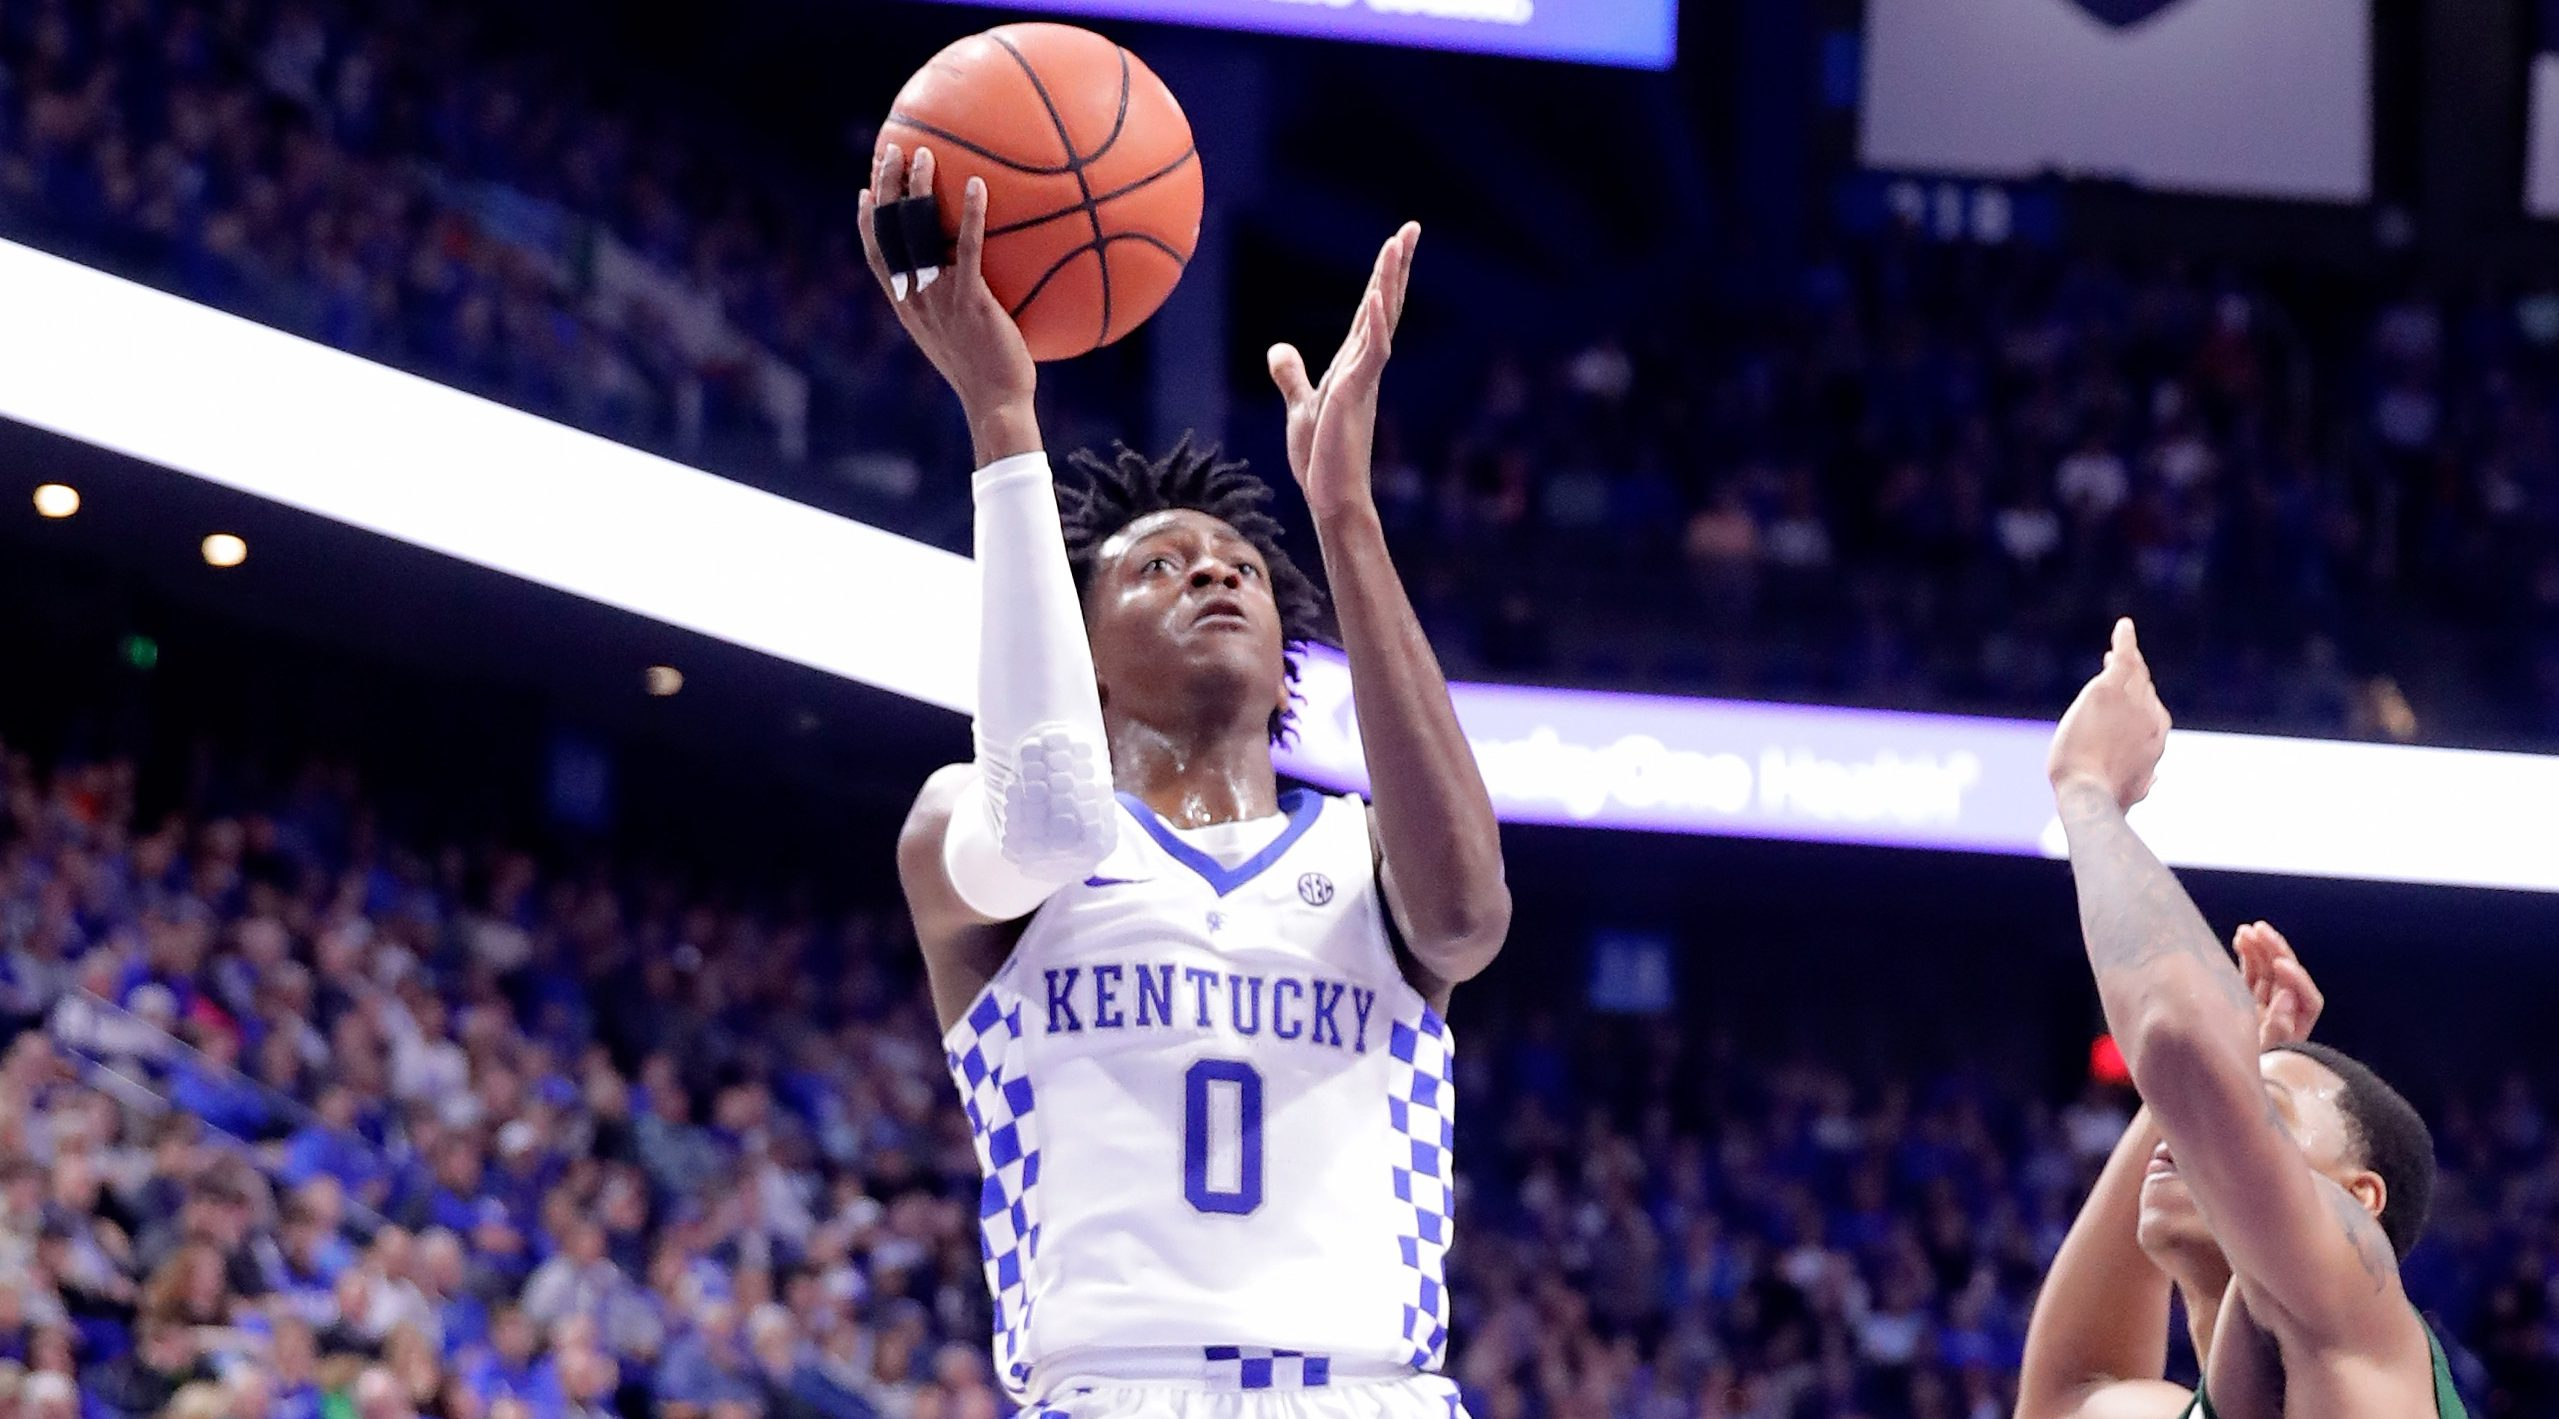 LEXINGTON, KY - NOVEMBER 23: De'Aaron Fox #0 of the Kentucky Wildcats shoots the ball during the game against the Cleveland State Vikings at Rupp Arena on November 23, 2016 in Lexington, Kentucky. (Photo by Andy Lyons/Getty Images)